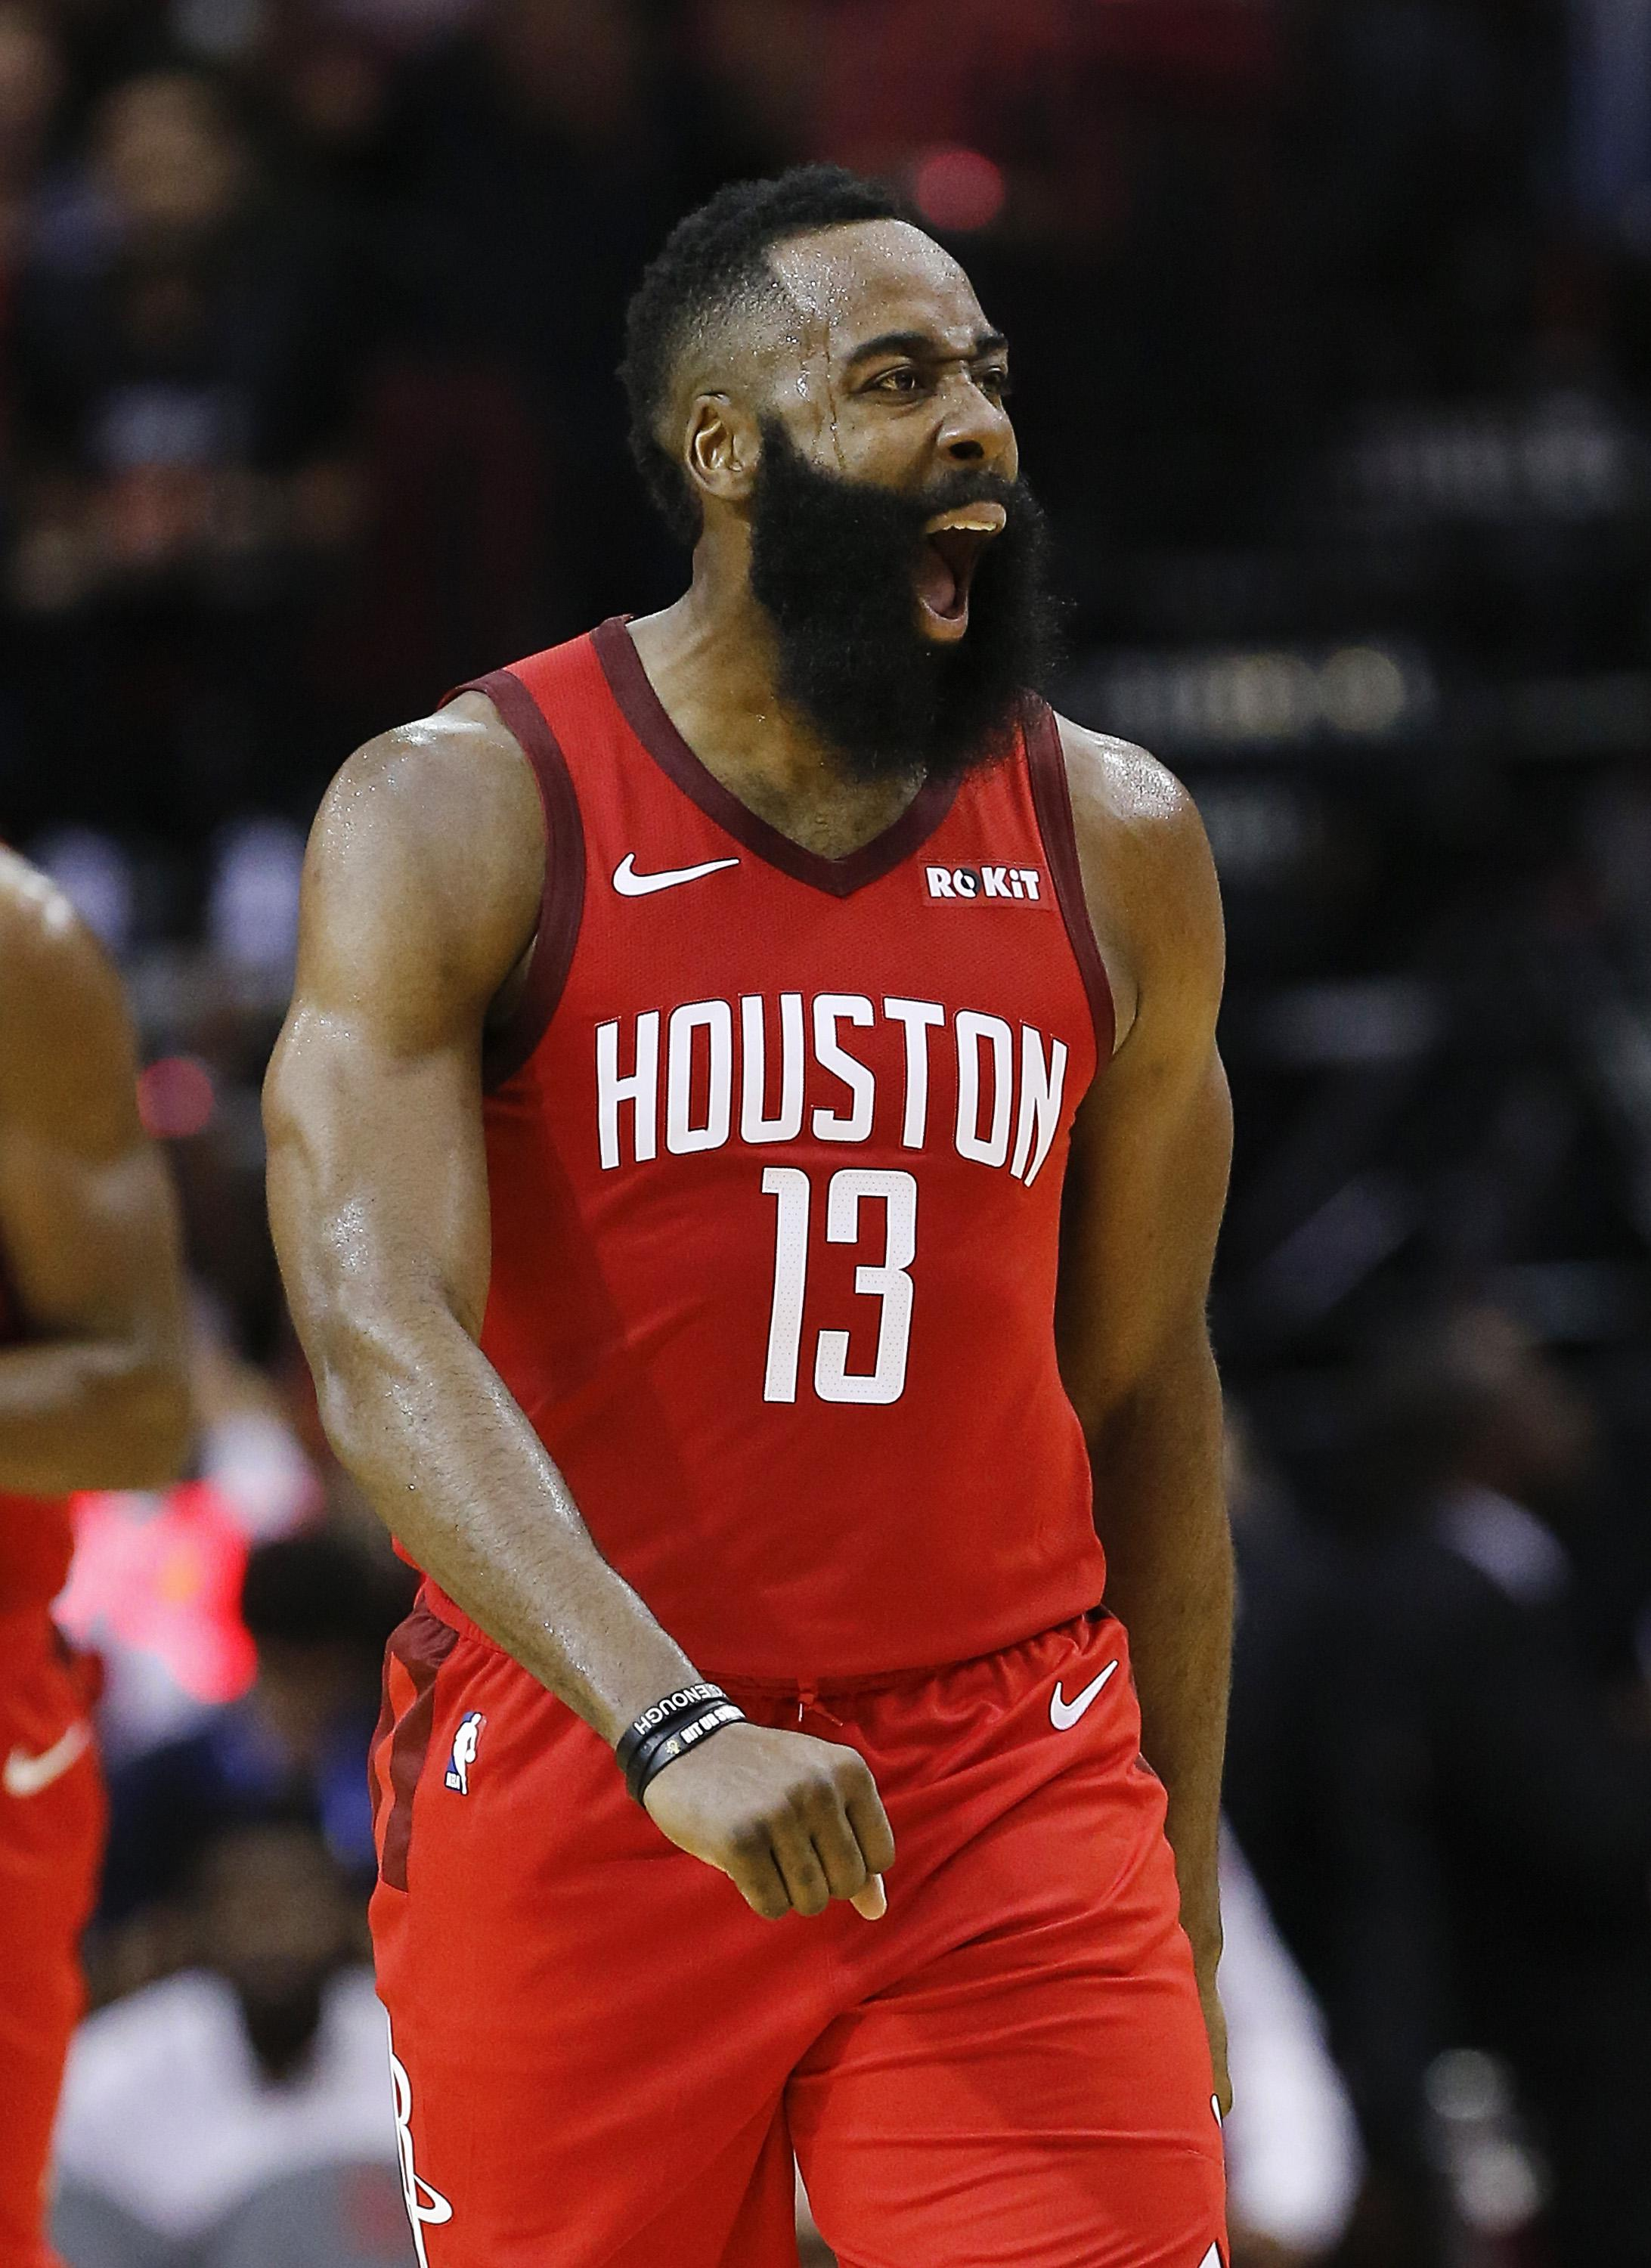 HOUSTON, TEXAS - DECEMBER 25: James Harden #13 of the Houston Rockets reacts after making a three point basket during the fourth quarter against the Oklahoma City Thunder at Toyota Center on December 25, 2018 in Houston, Texas. NOTE TO USER: User expressly acknowledges and agrees that, by downloading and or using this photograph, User is consenting to the terms and conditions of the Getty Images License Agreement. (Photo by Bob Levey/Getty Images)